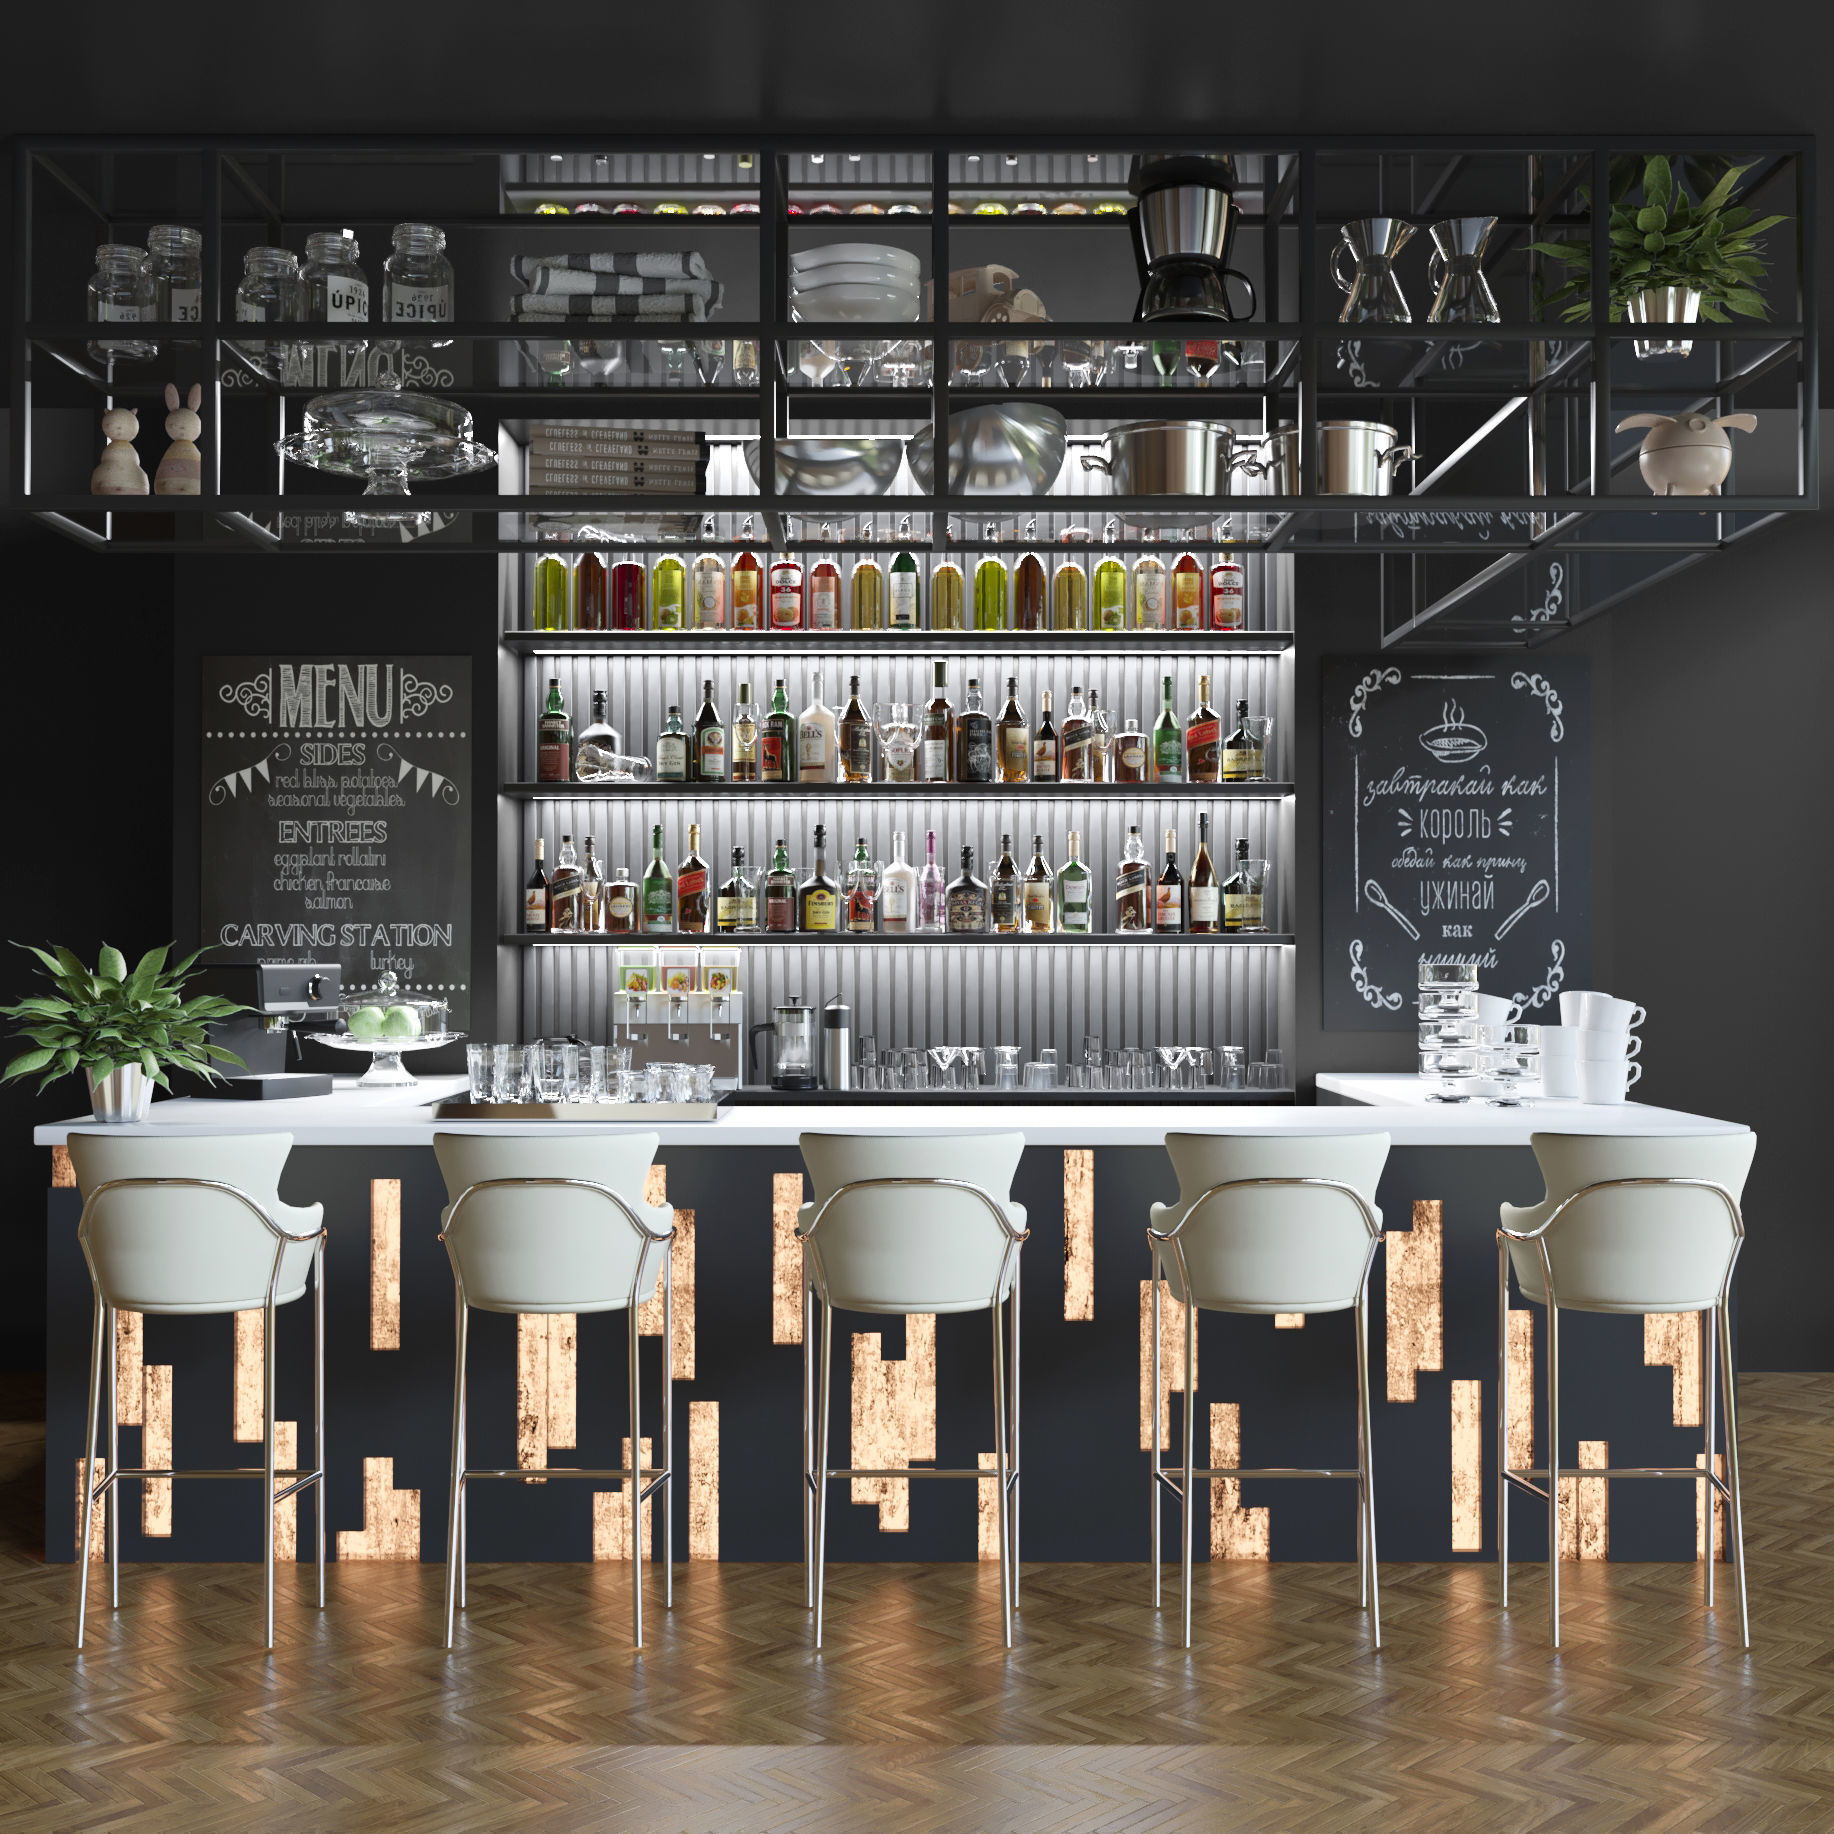 Large bar with alcoholic drinks 2